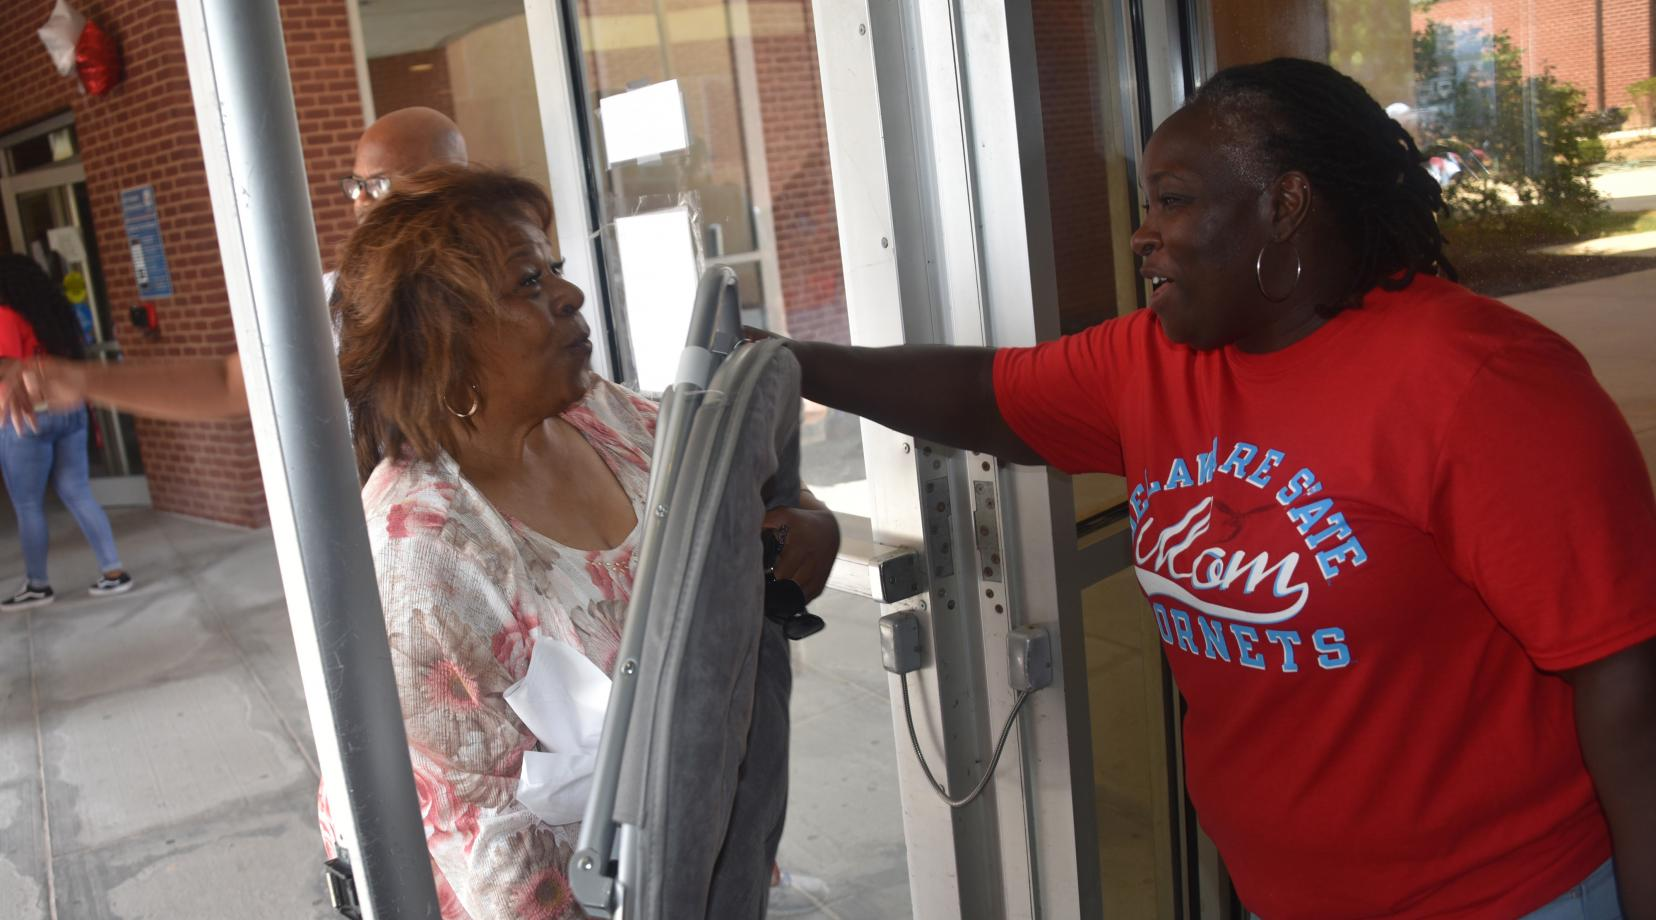 University President Wilma Mishoe even got into the volunteer work of helping students and the families move their belongings into the residential halls.